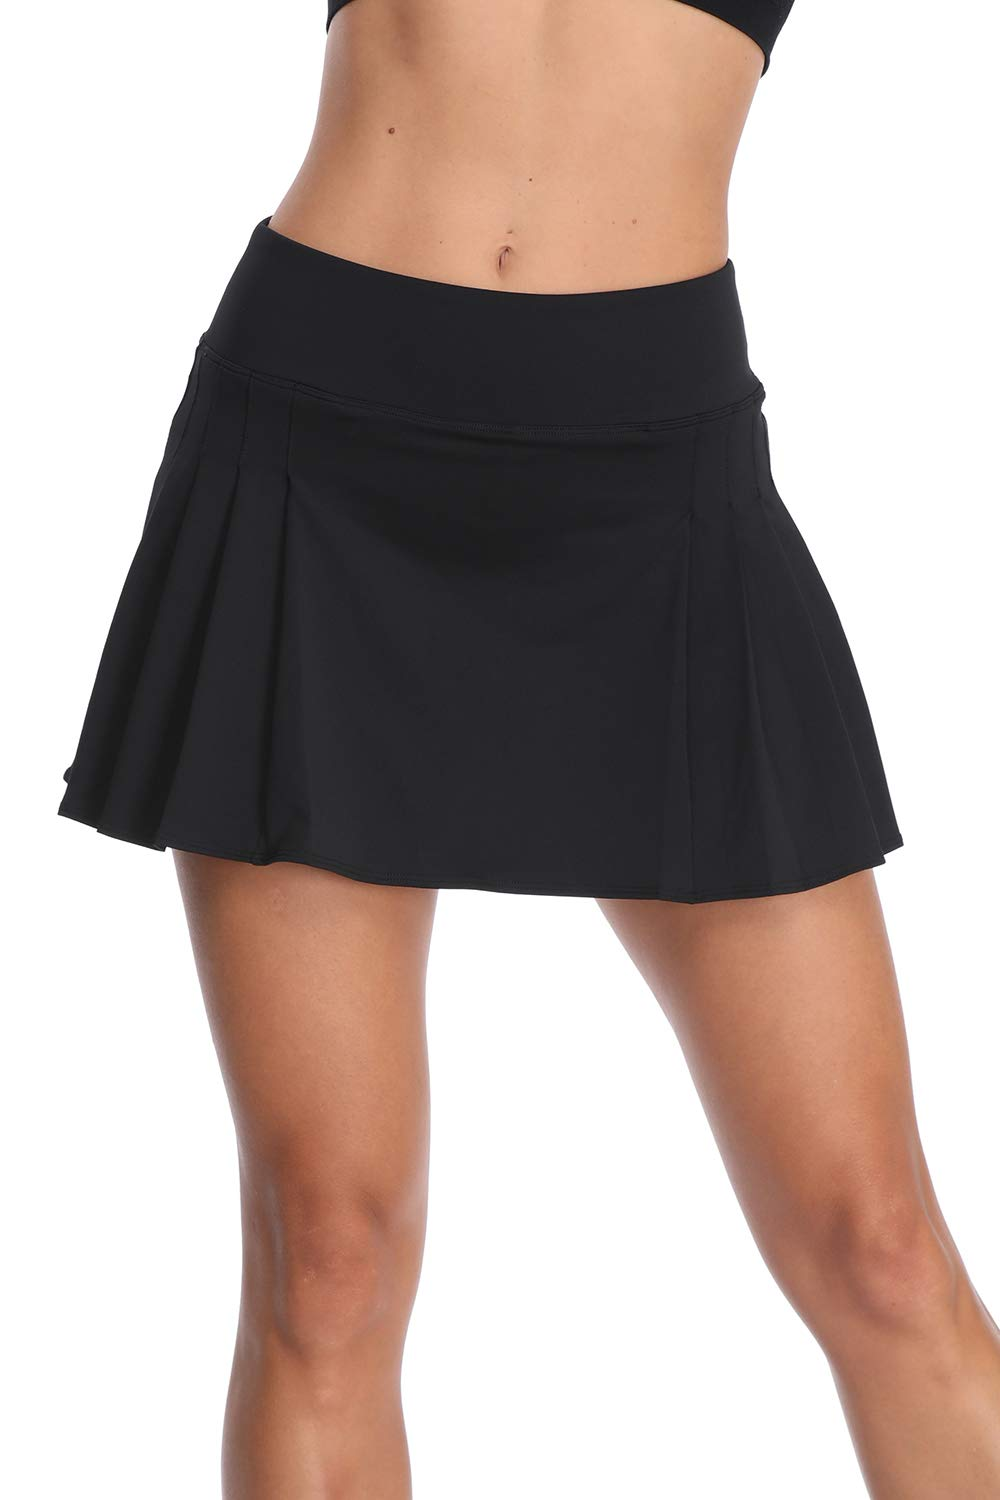 32e-SANERYI Women's Pleated Elastic Quick-Drying Tennis Skirt with Shorts Running Skort-KXL Black by 32e-SANERYI